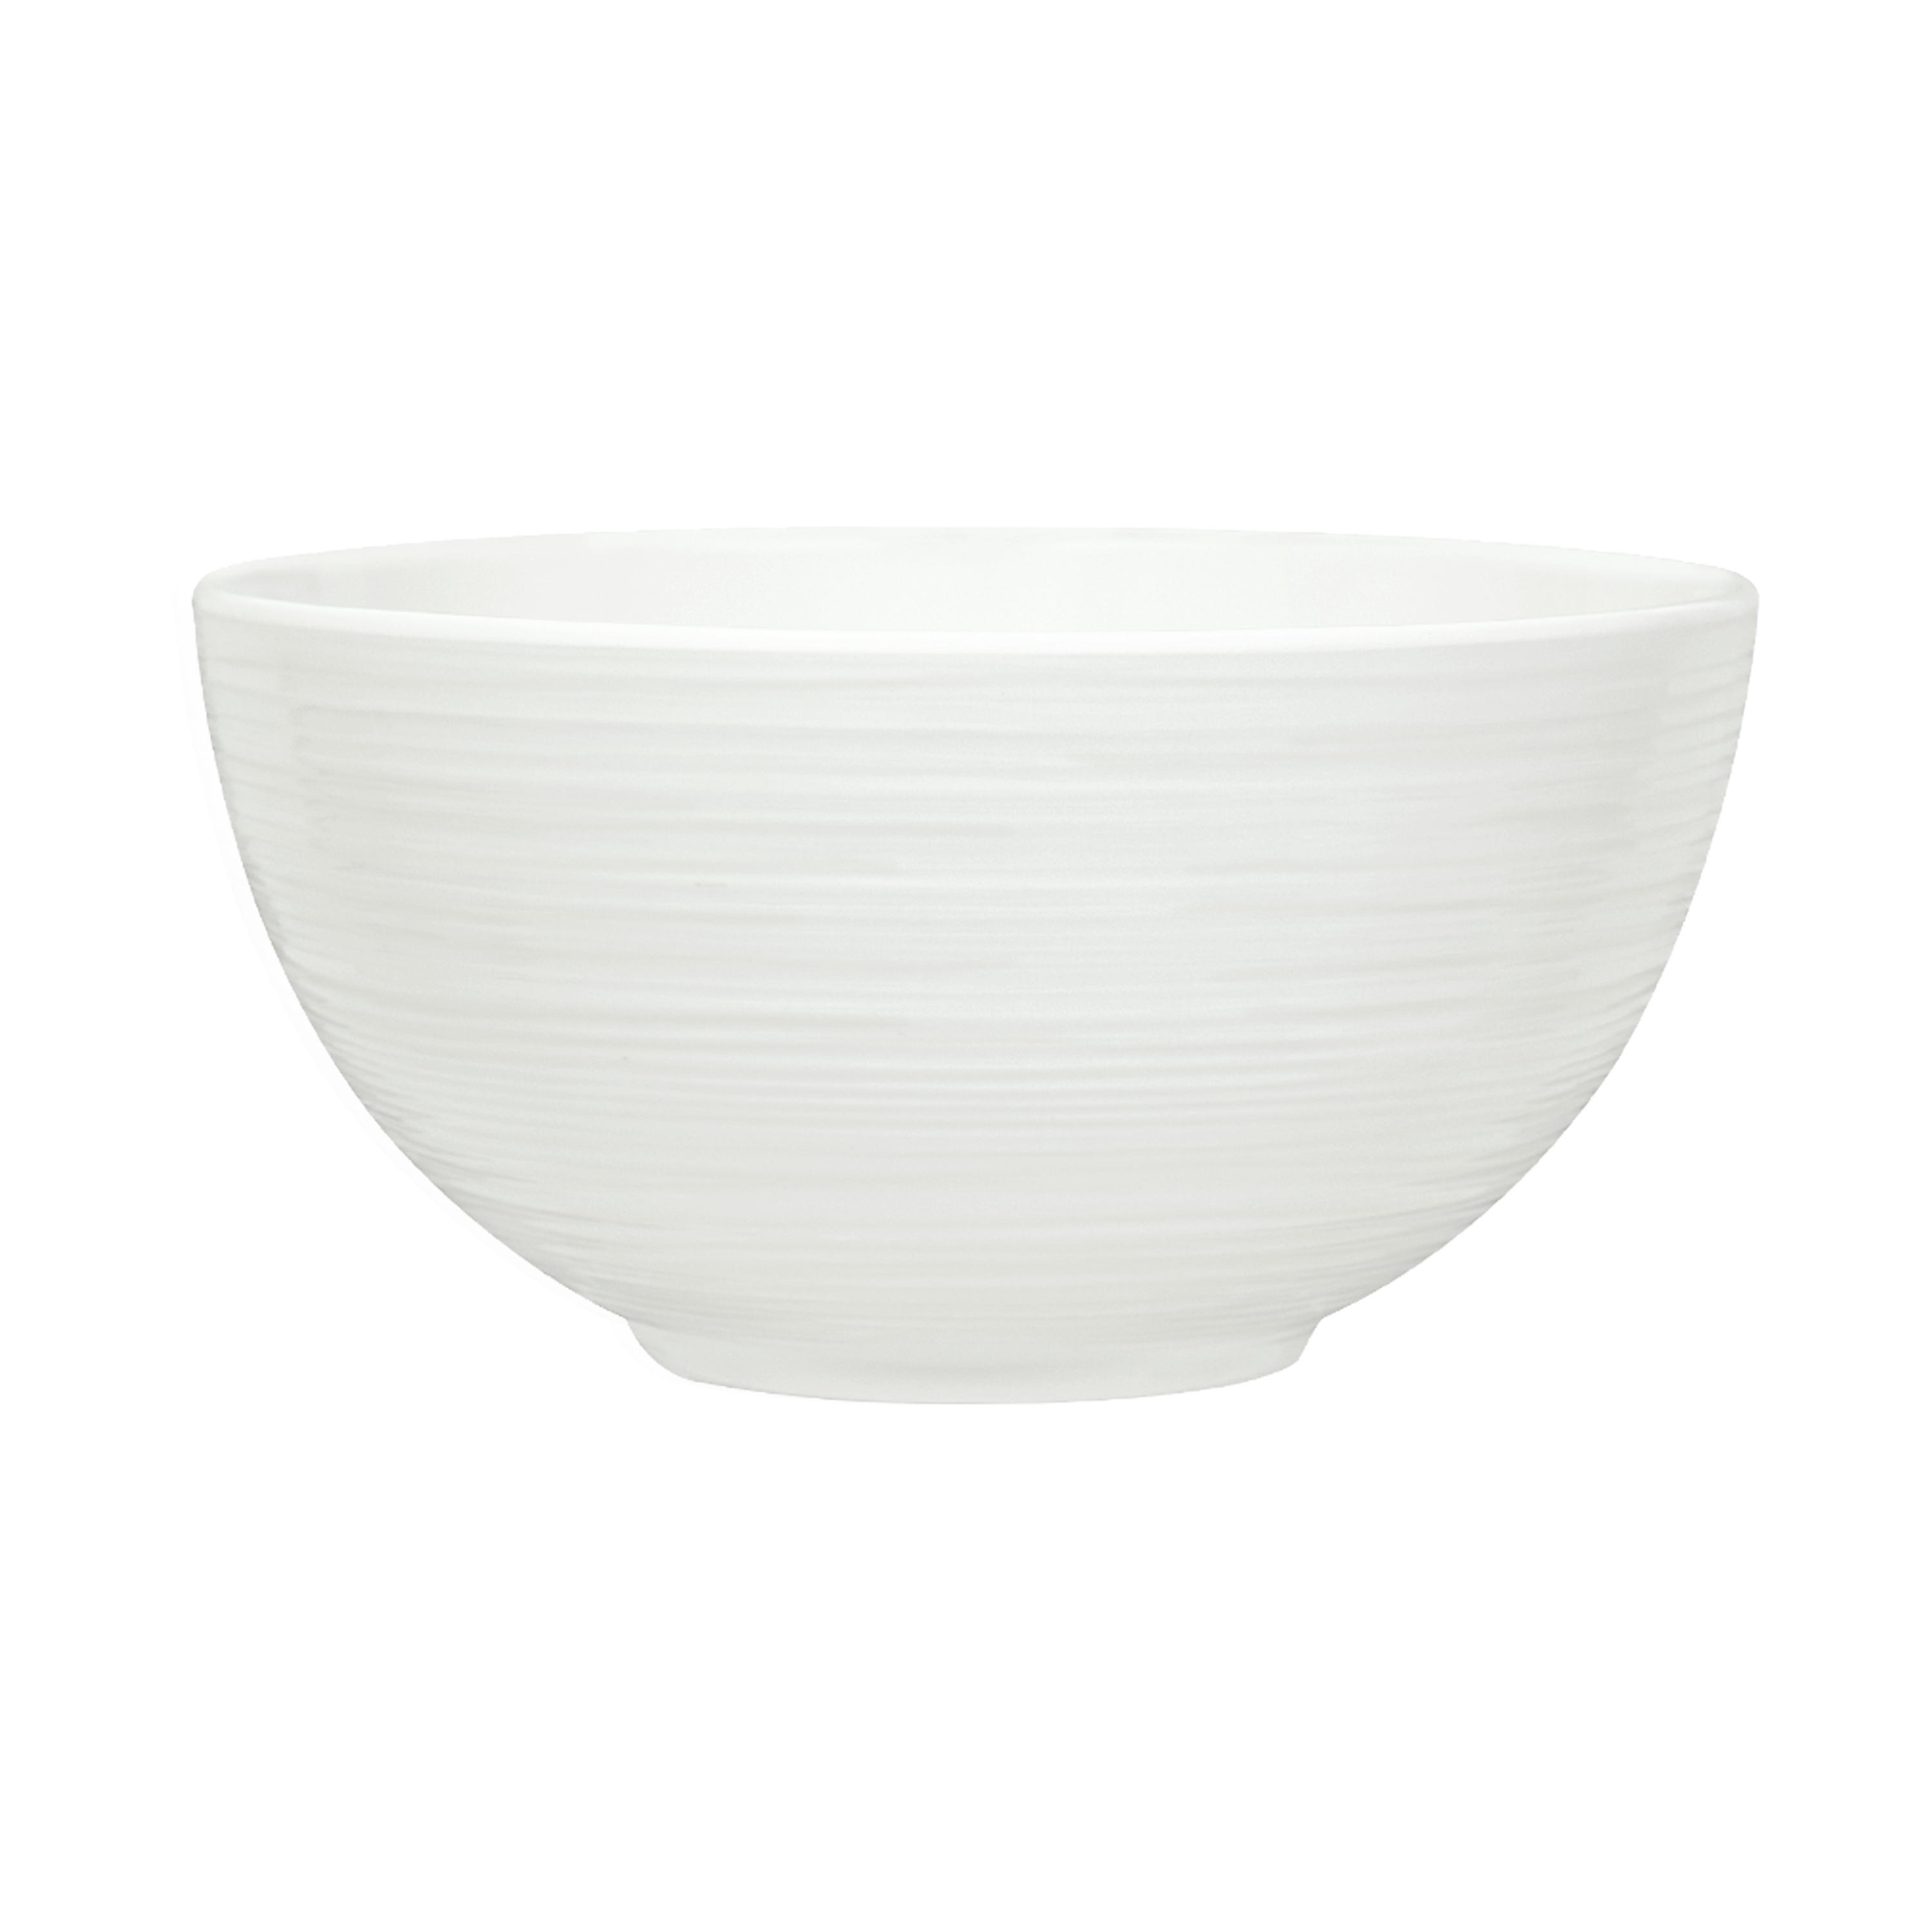 American Conventional Plate & Bowl Sets, White, 12-piece set slideshow image 3